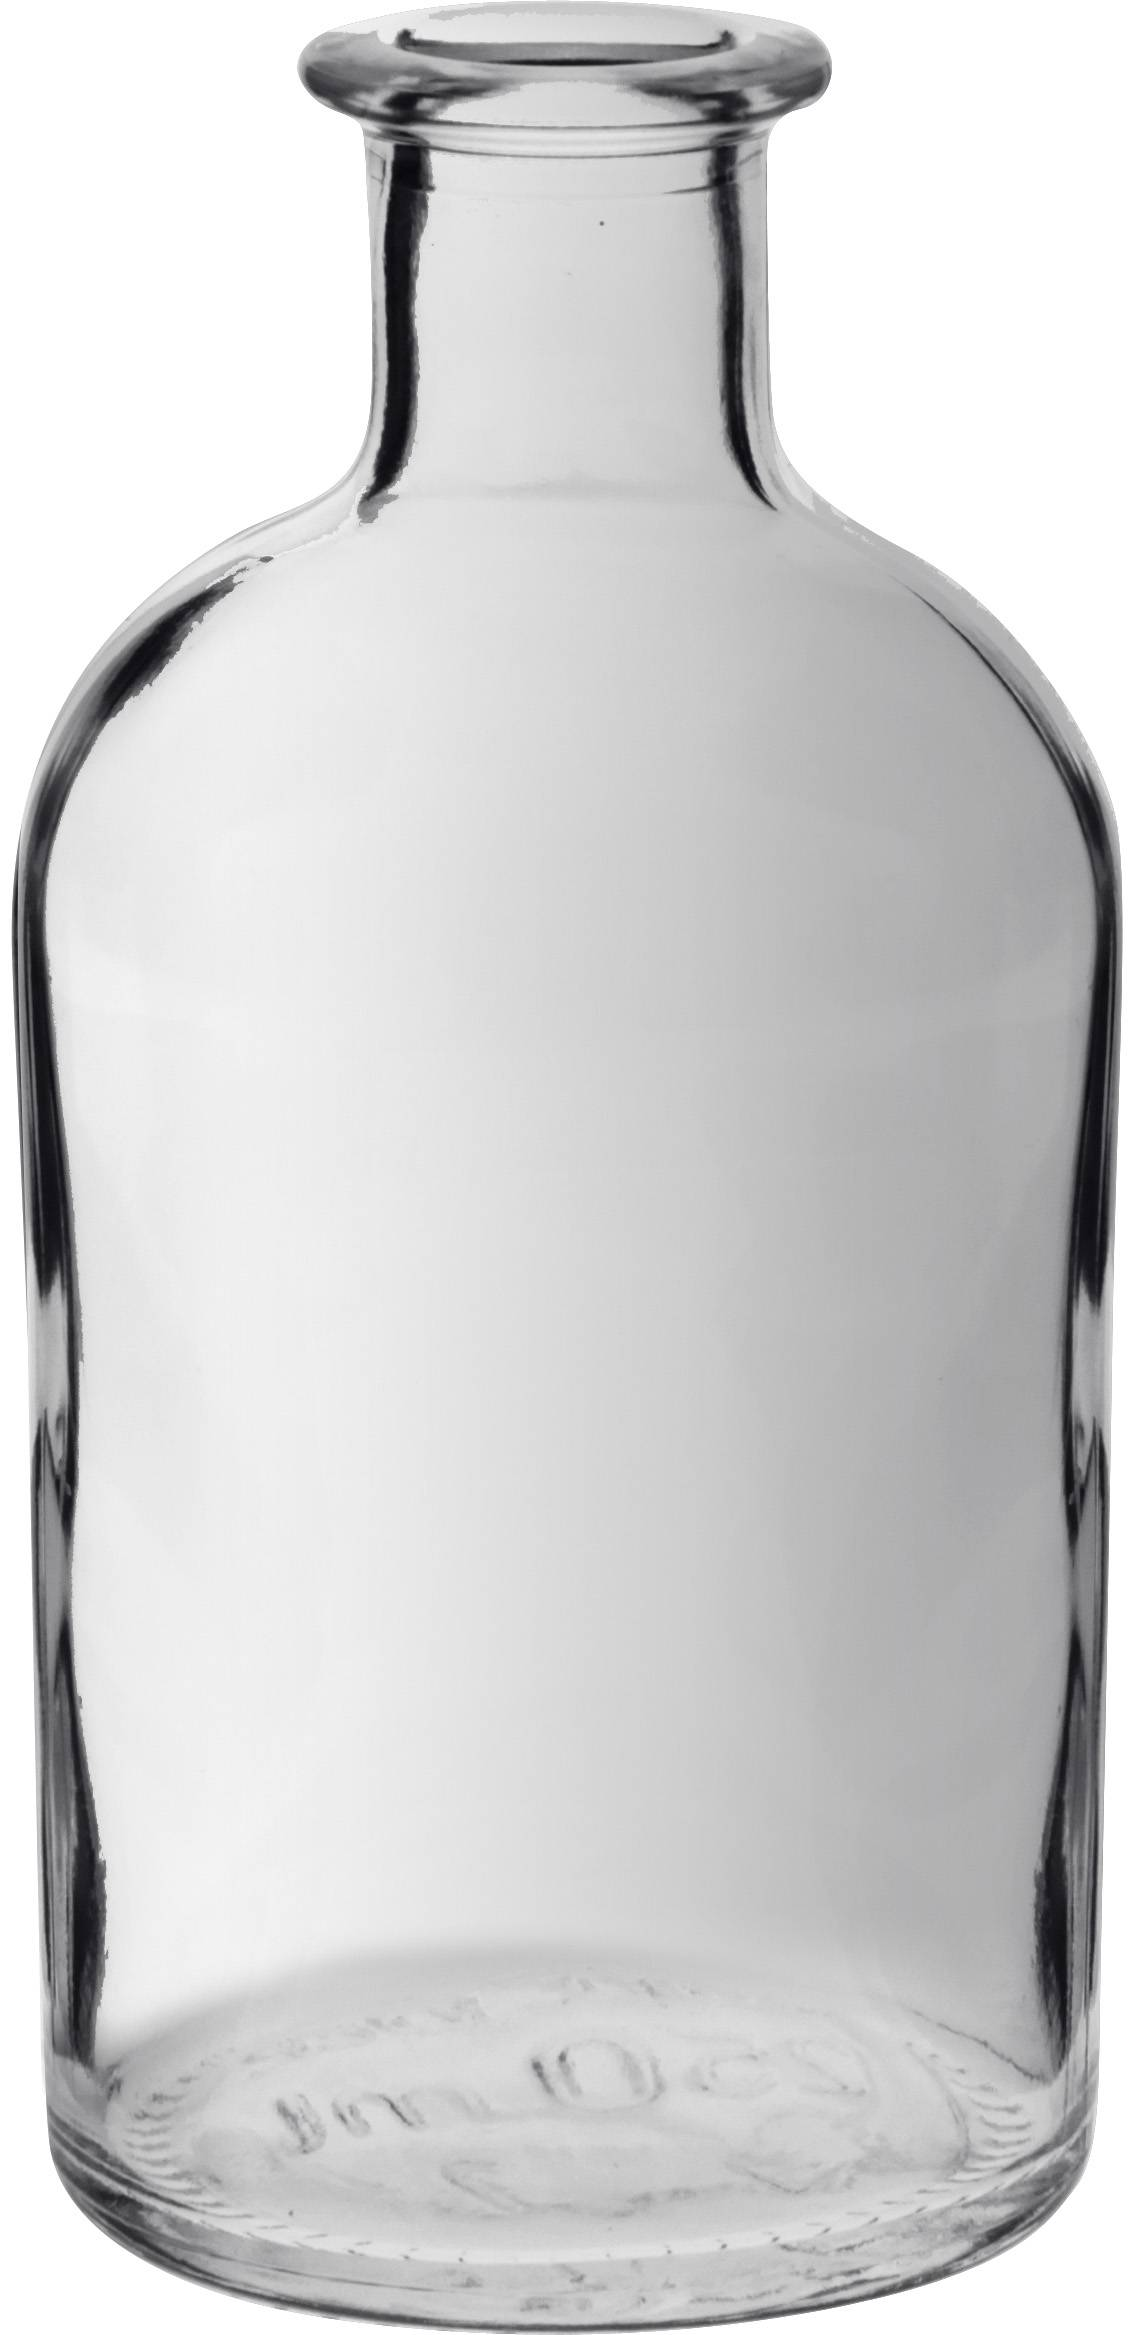 VECCHIA FARMACIA fancy glass bottle